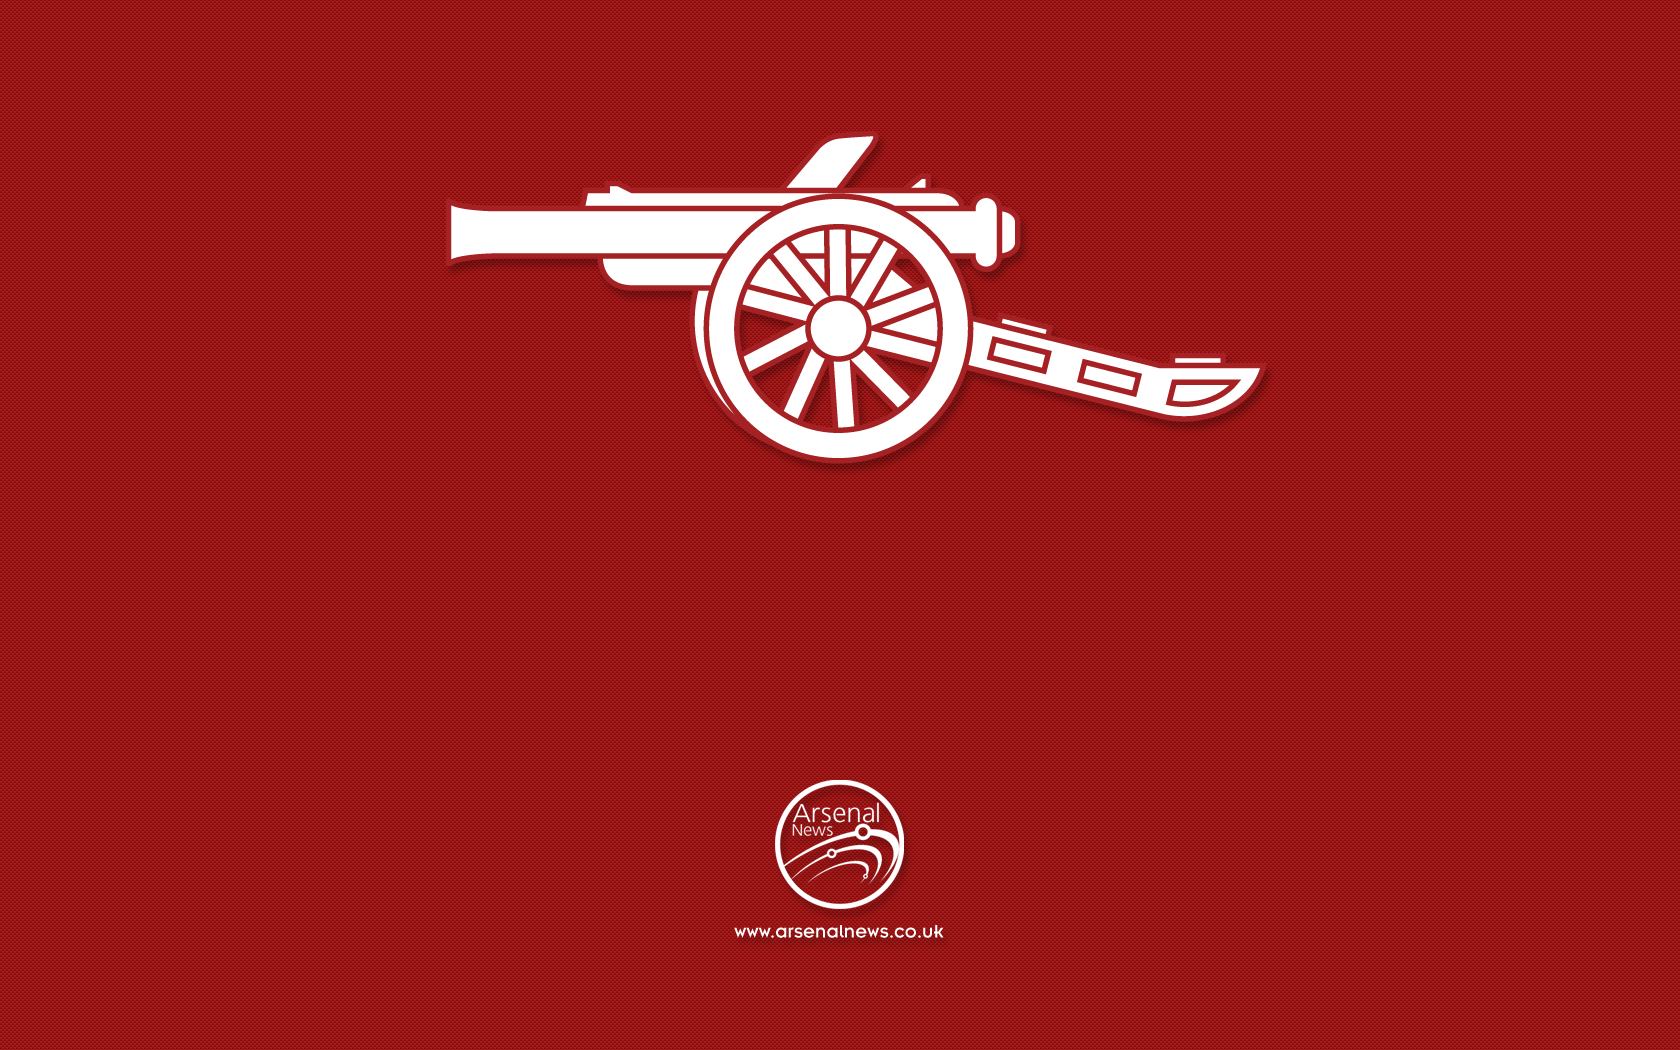 Arsenal Wallpaper Mobile Phones 2015